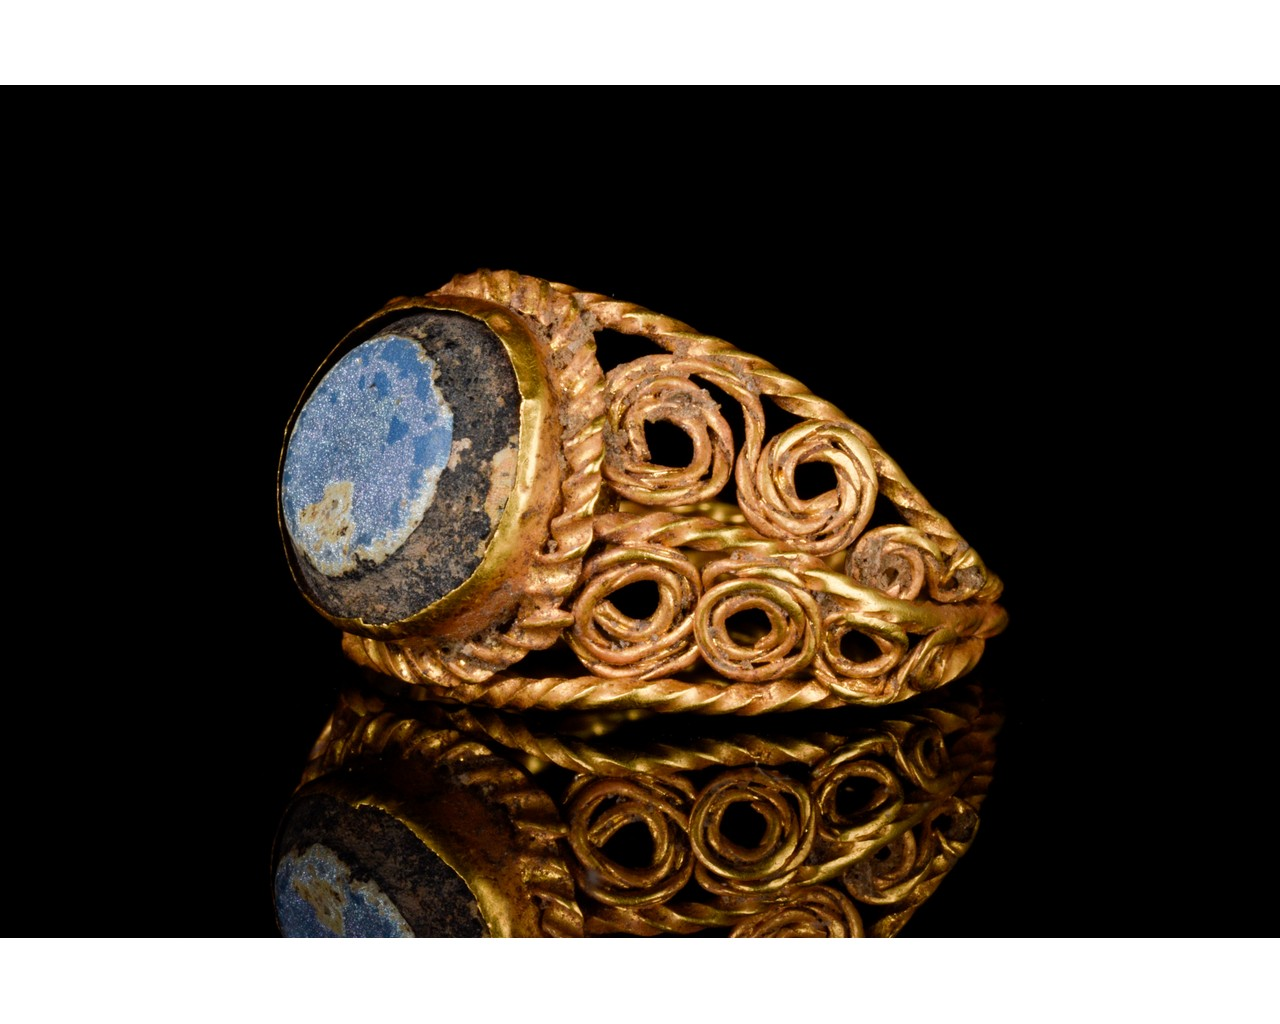 LATE ROMAN GOLD AND GLASS RING - EX CHRISTIES - FULL ANALYSIS